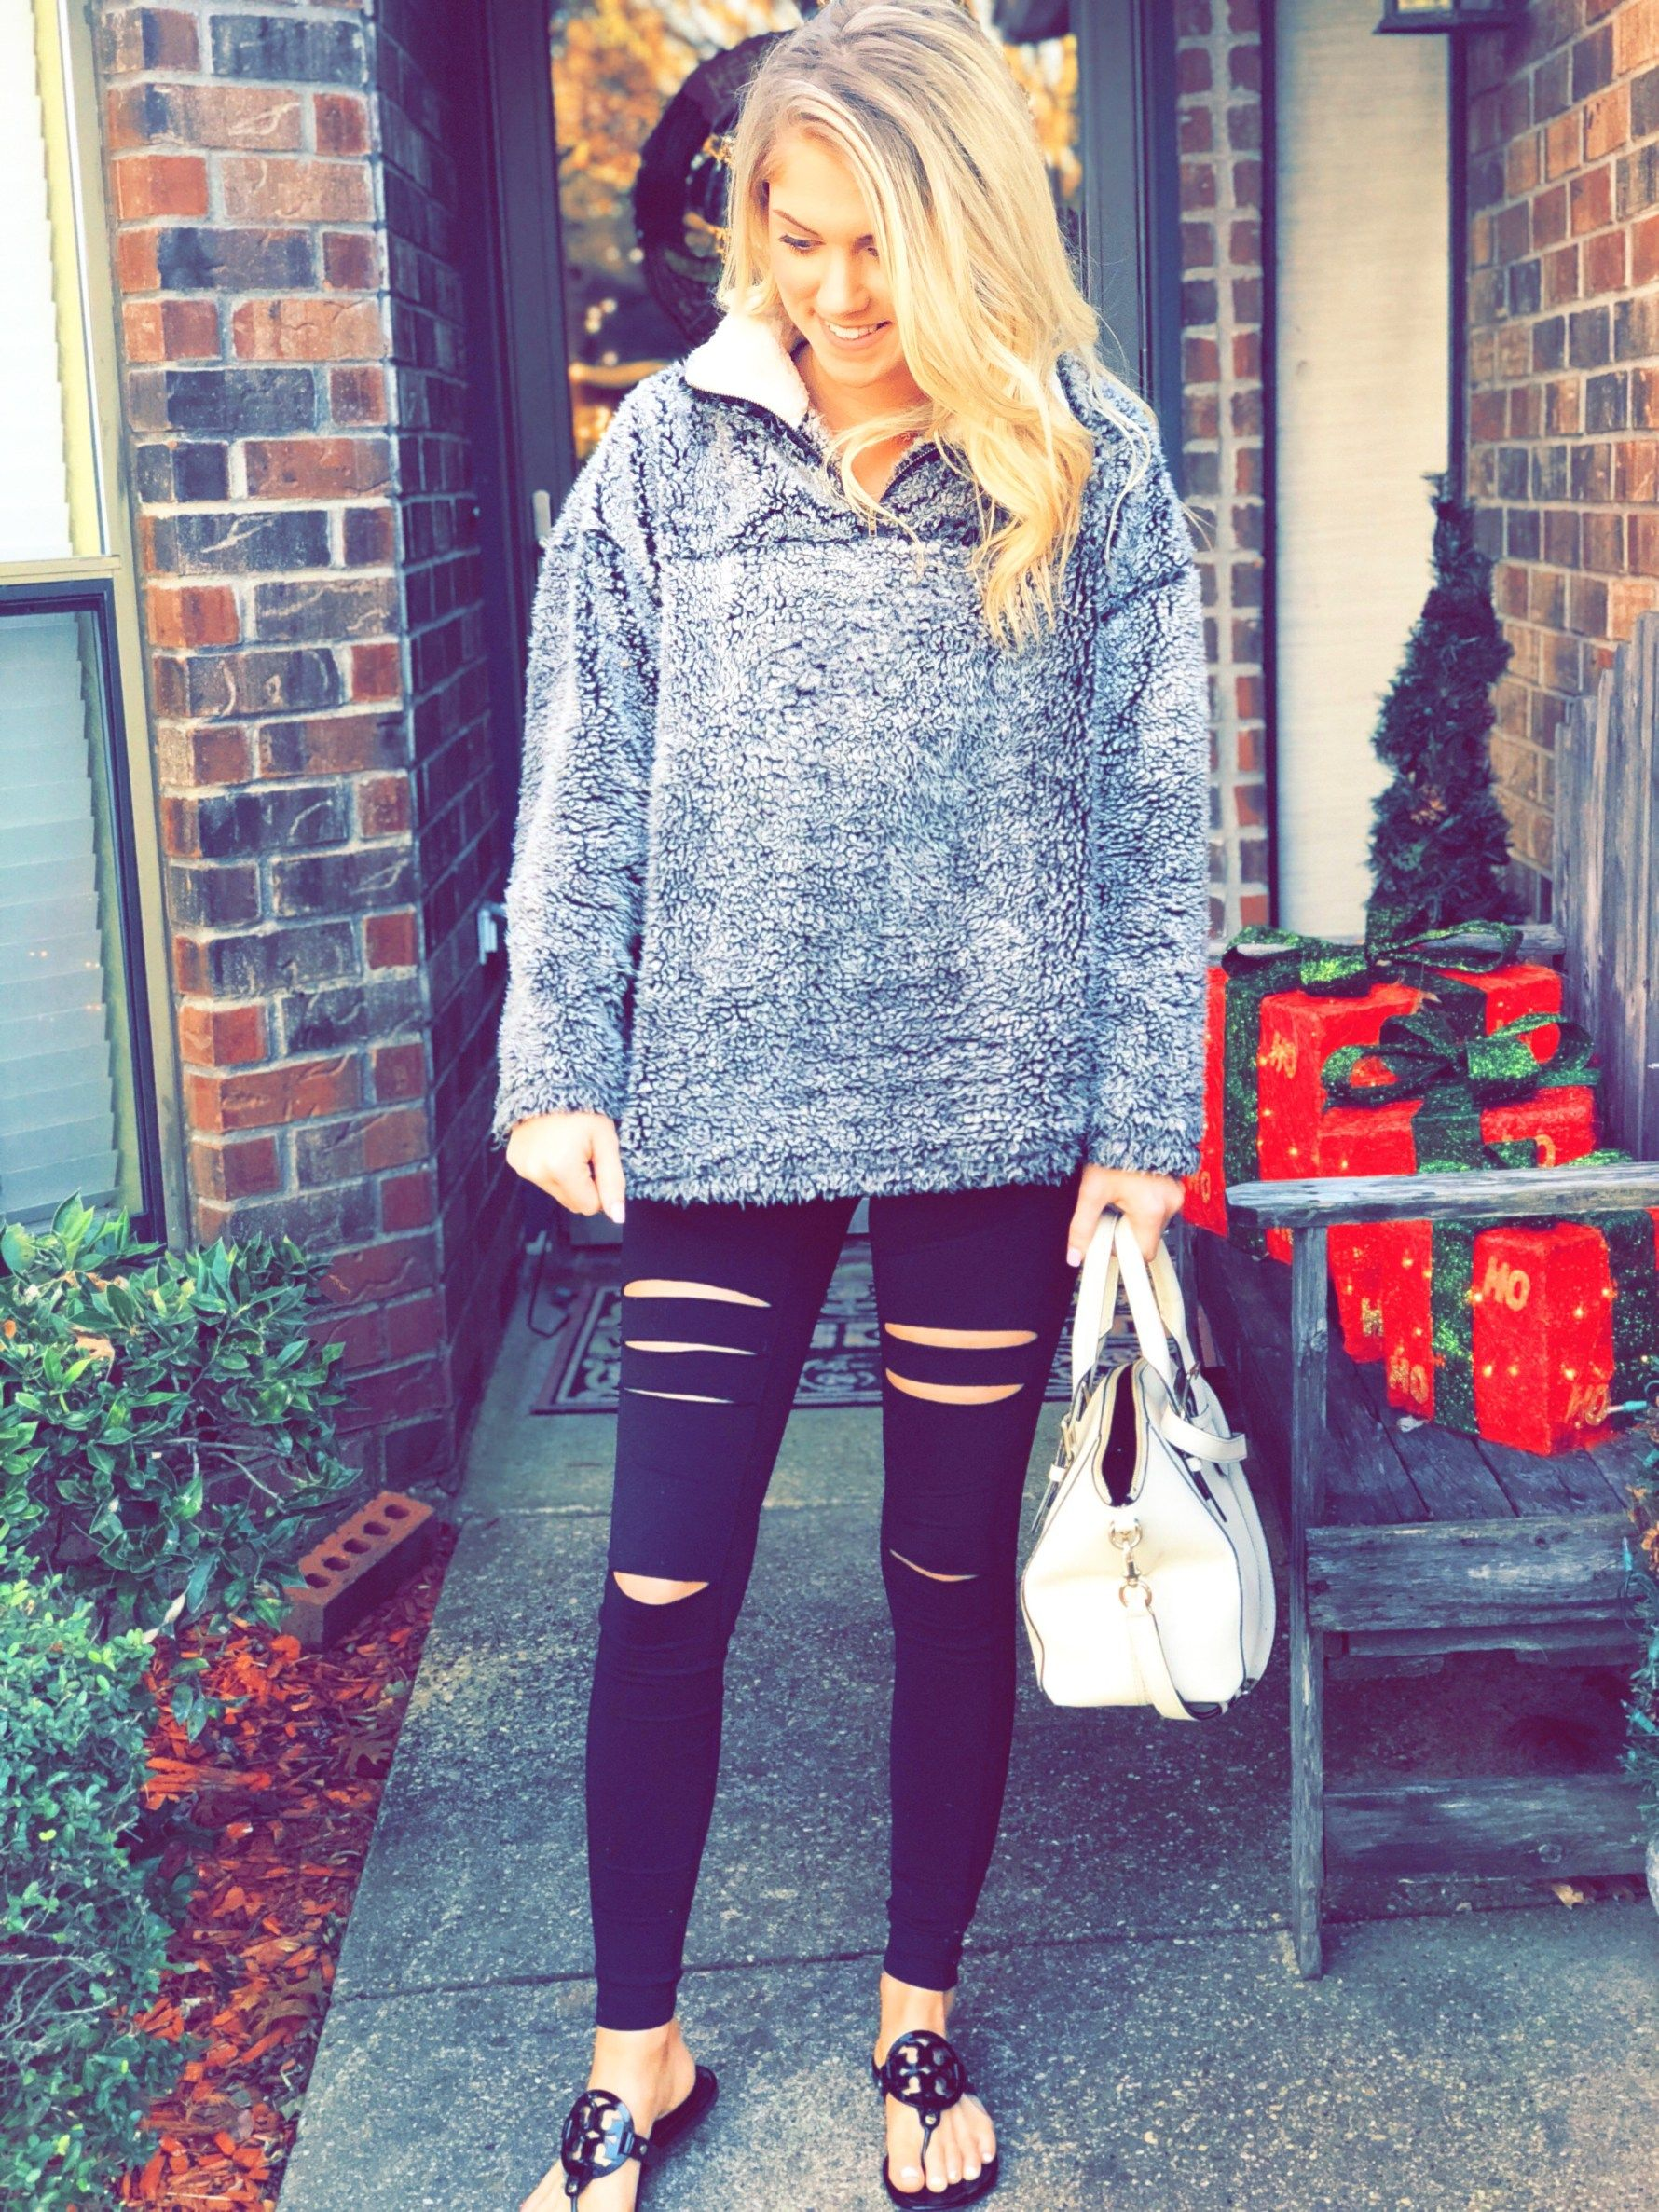 b201f8f947f1 My All Time Fav Go-To Outfits | Fall fashion | Winter outfits ...